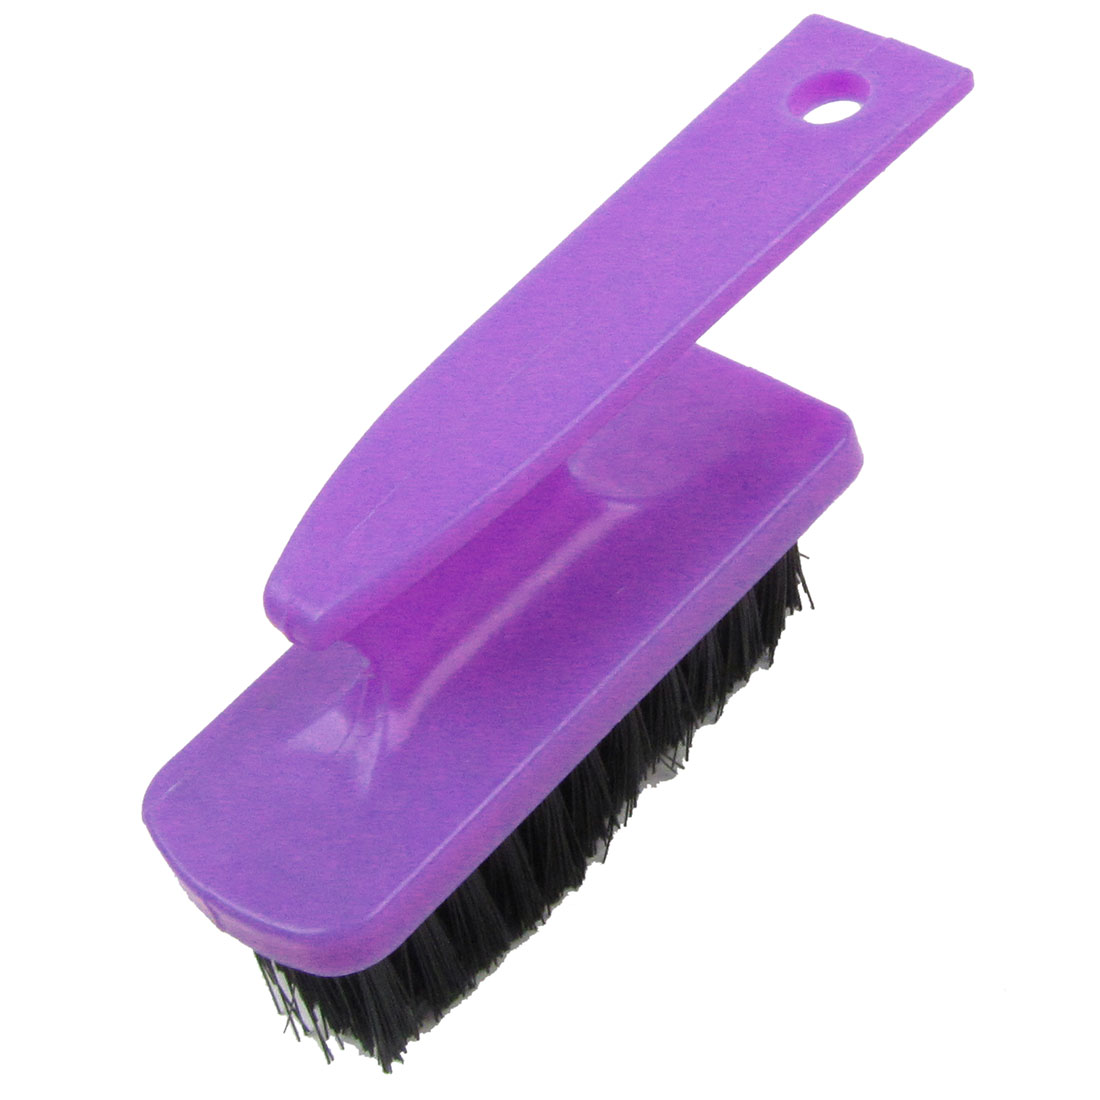 Purple Black Compact Size Plastic Cleaning Scrubbing Brush Tool